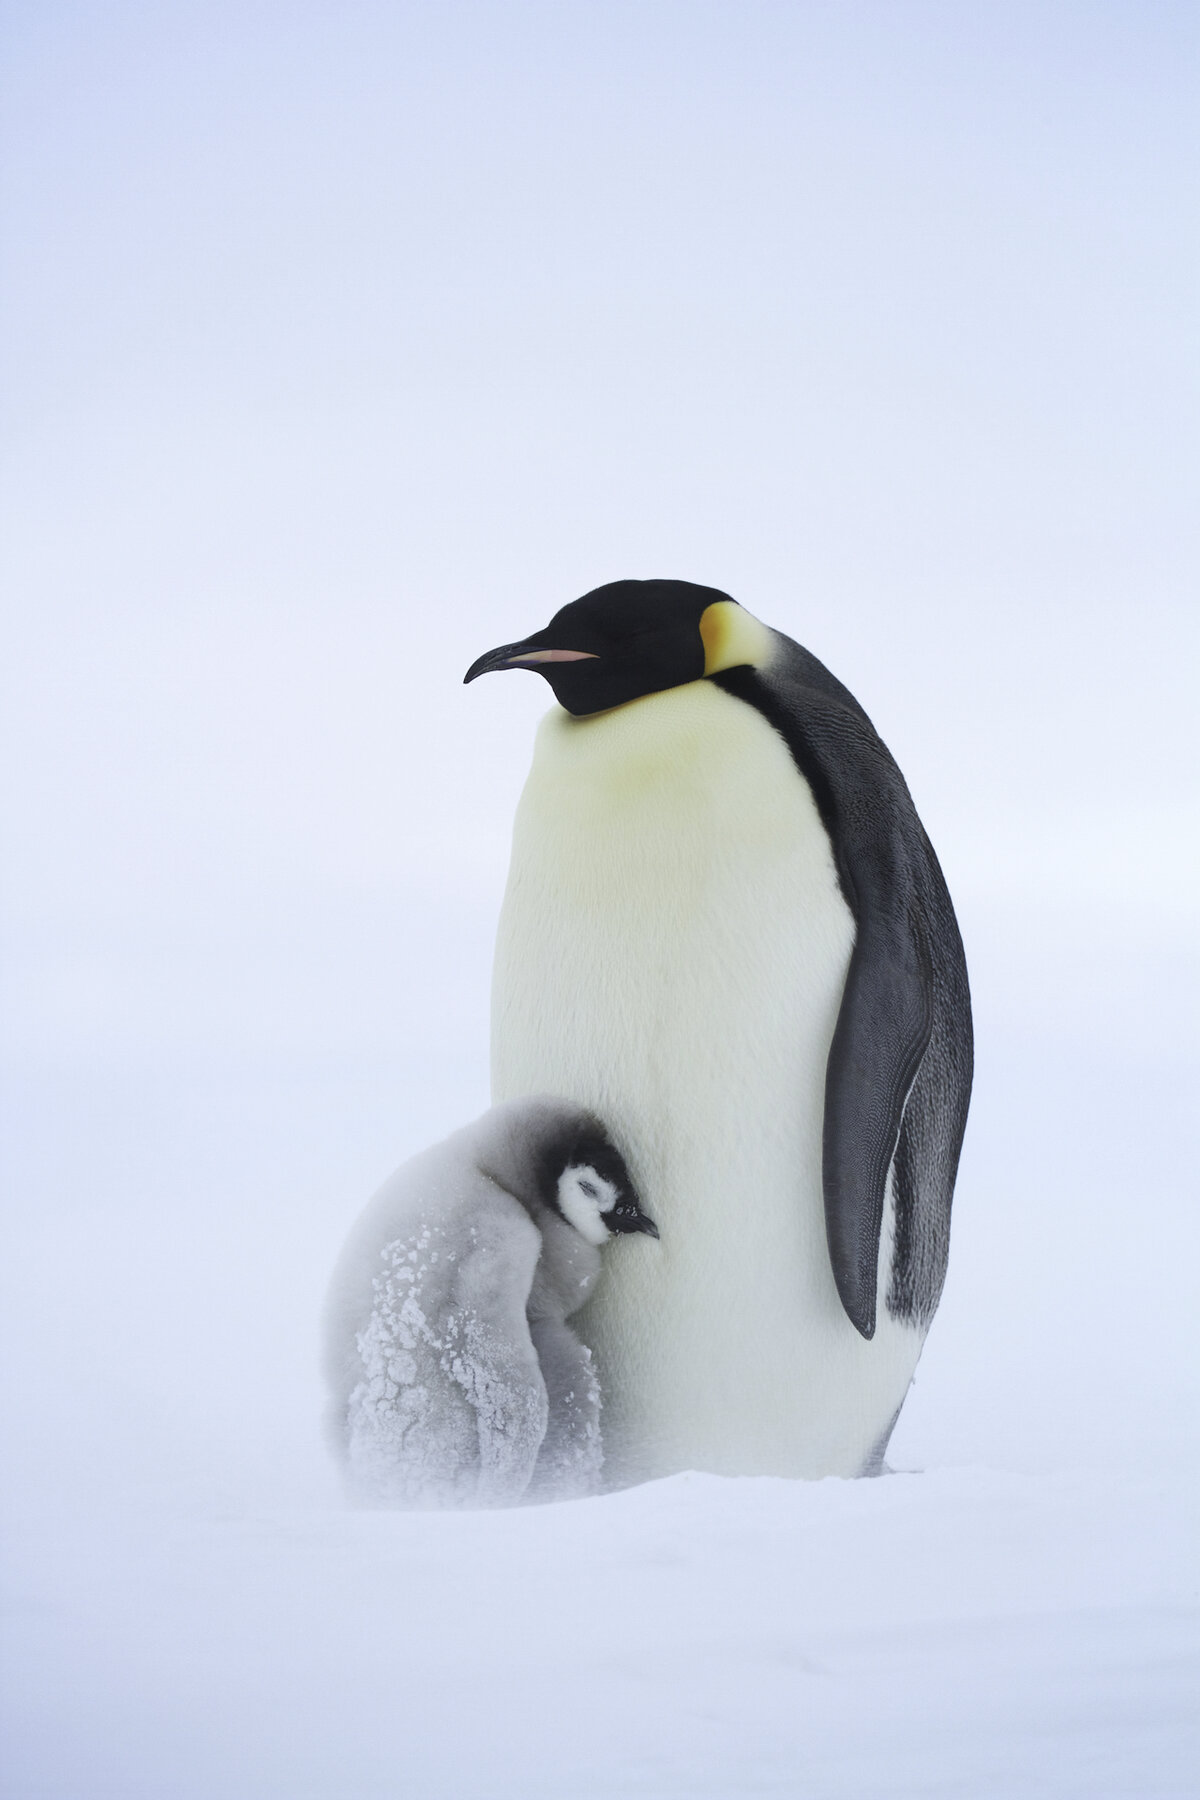 Chick huddles against parent during a snow storm